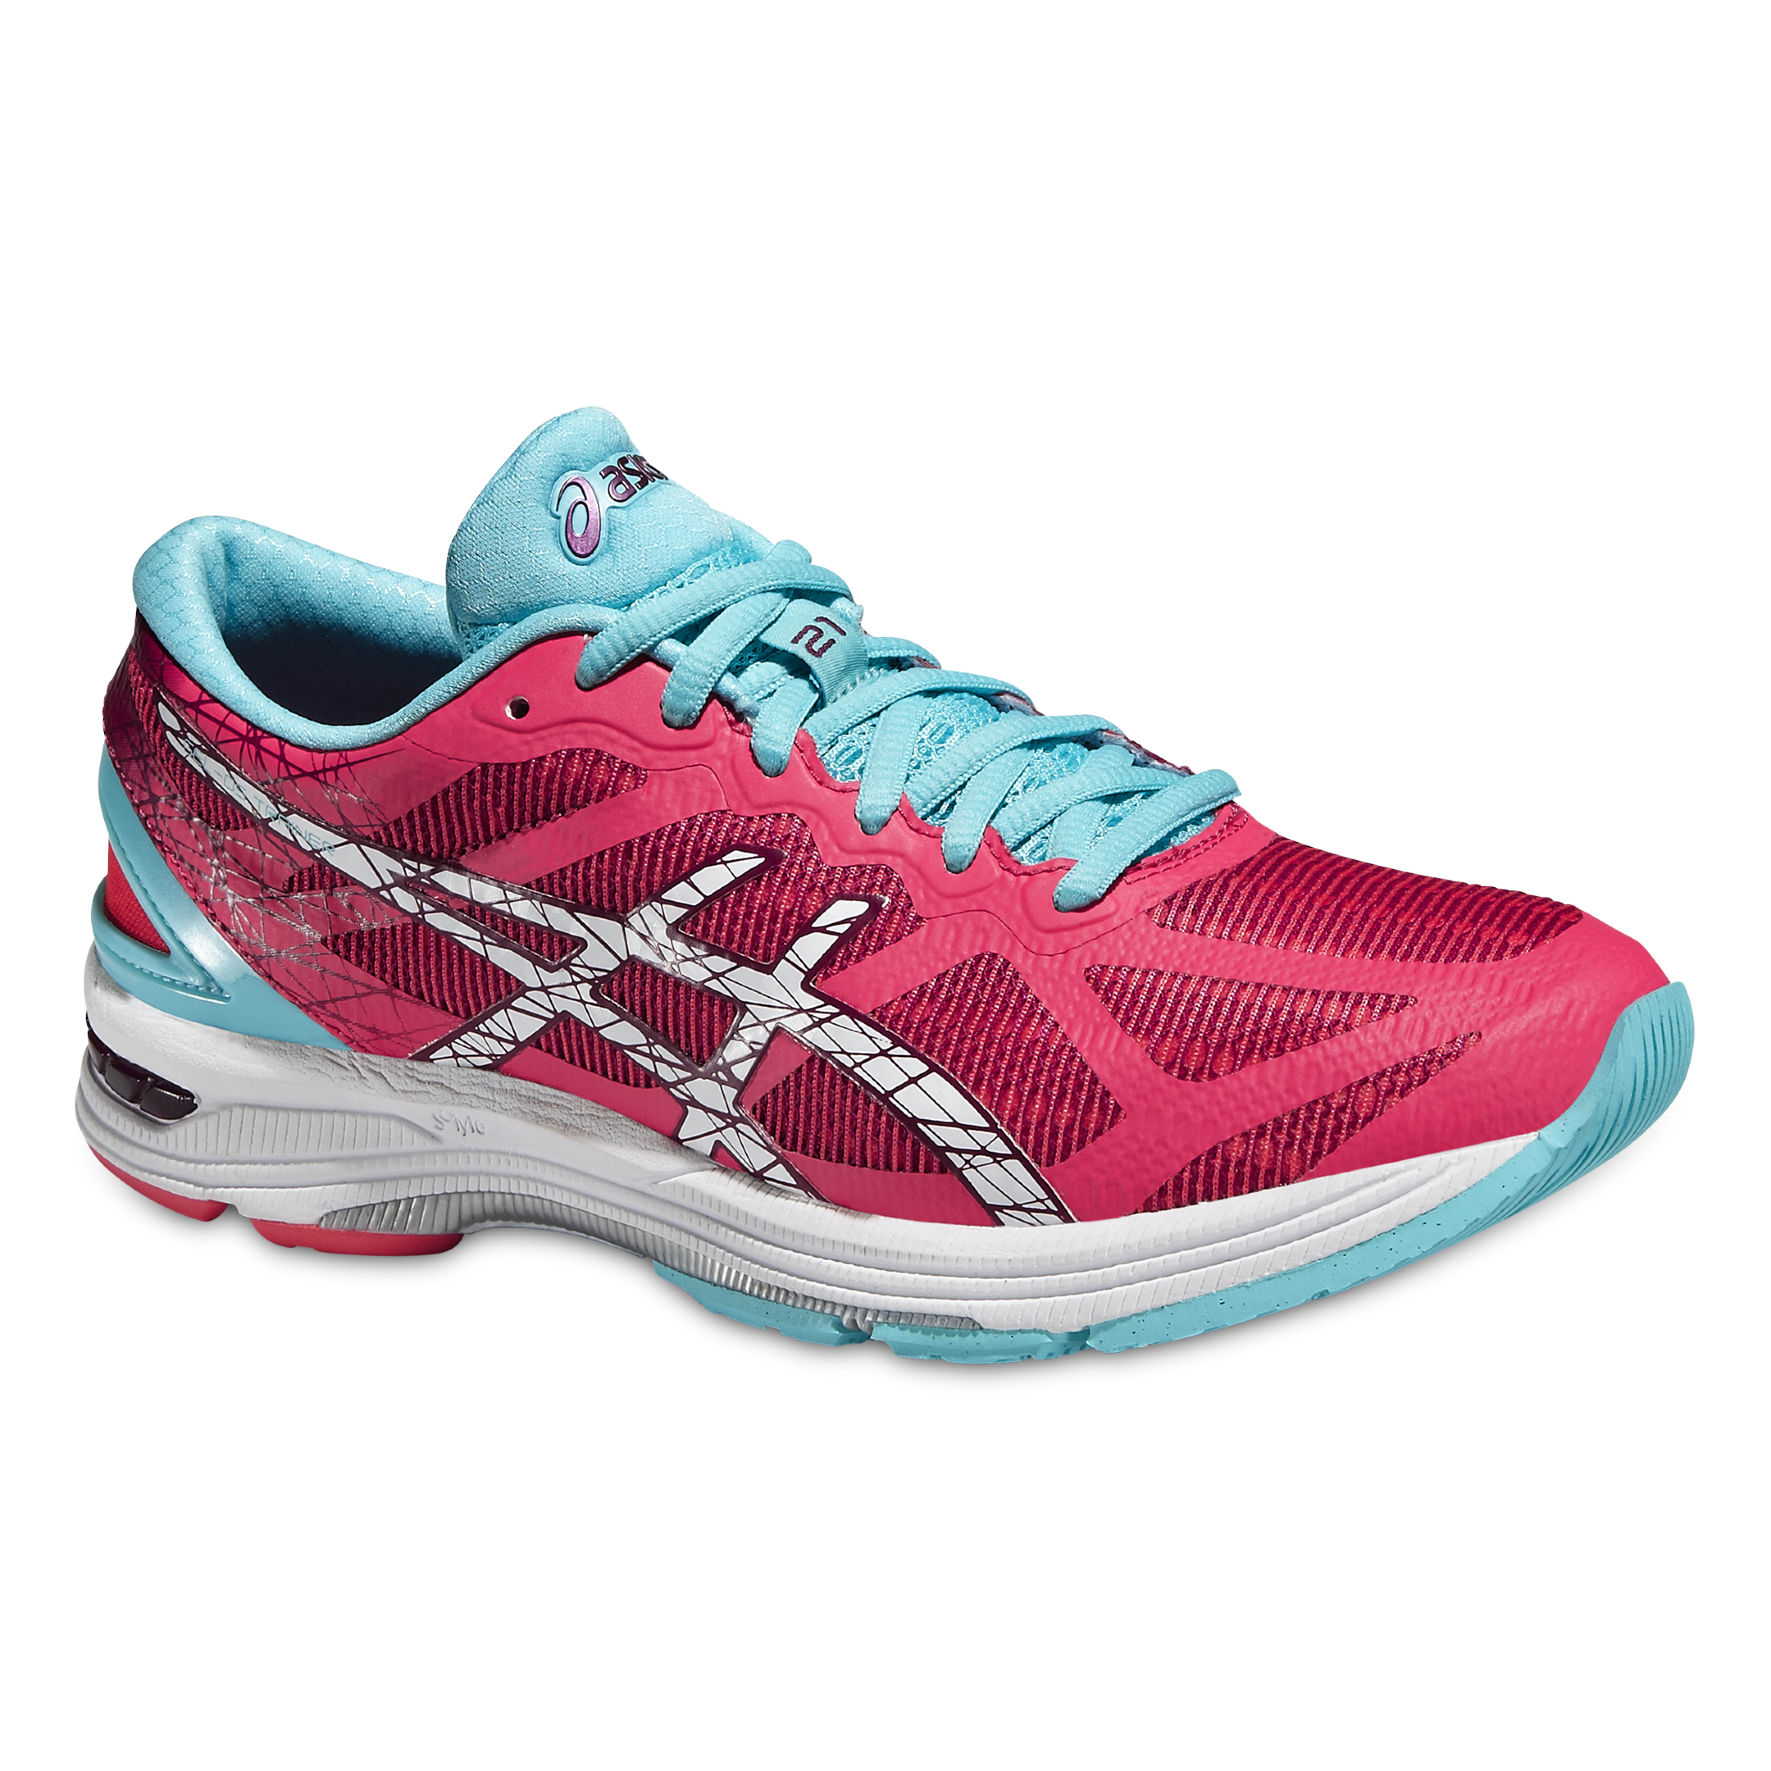 Asics Lady Gel DS-Trainer 21 in Pink